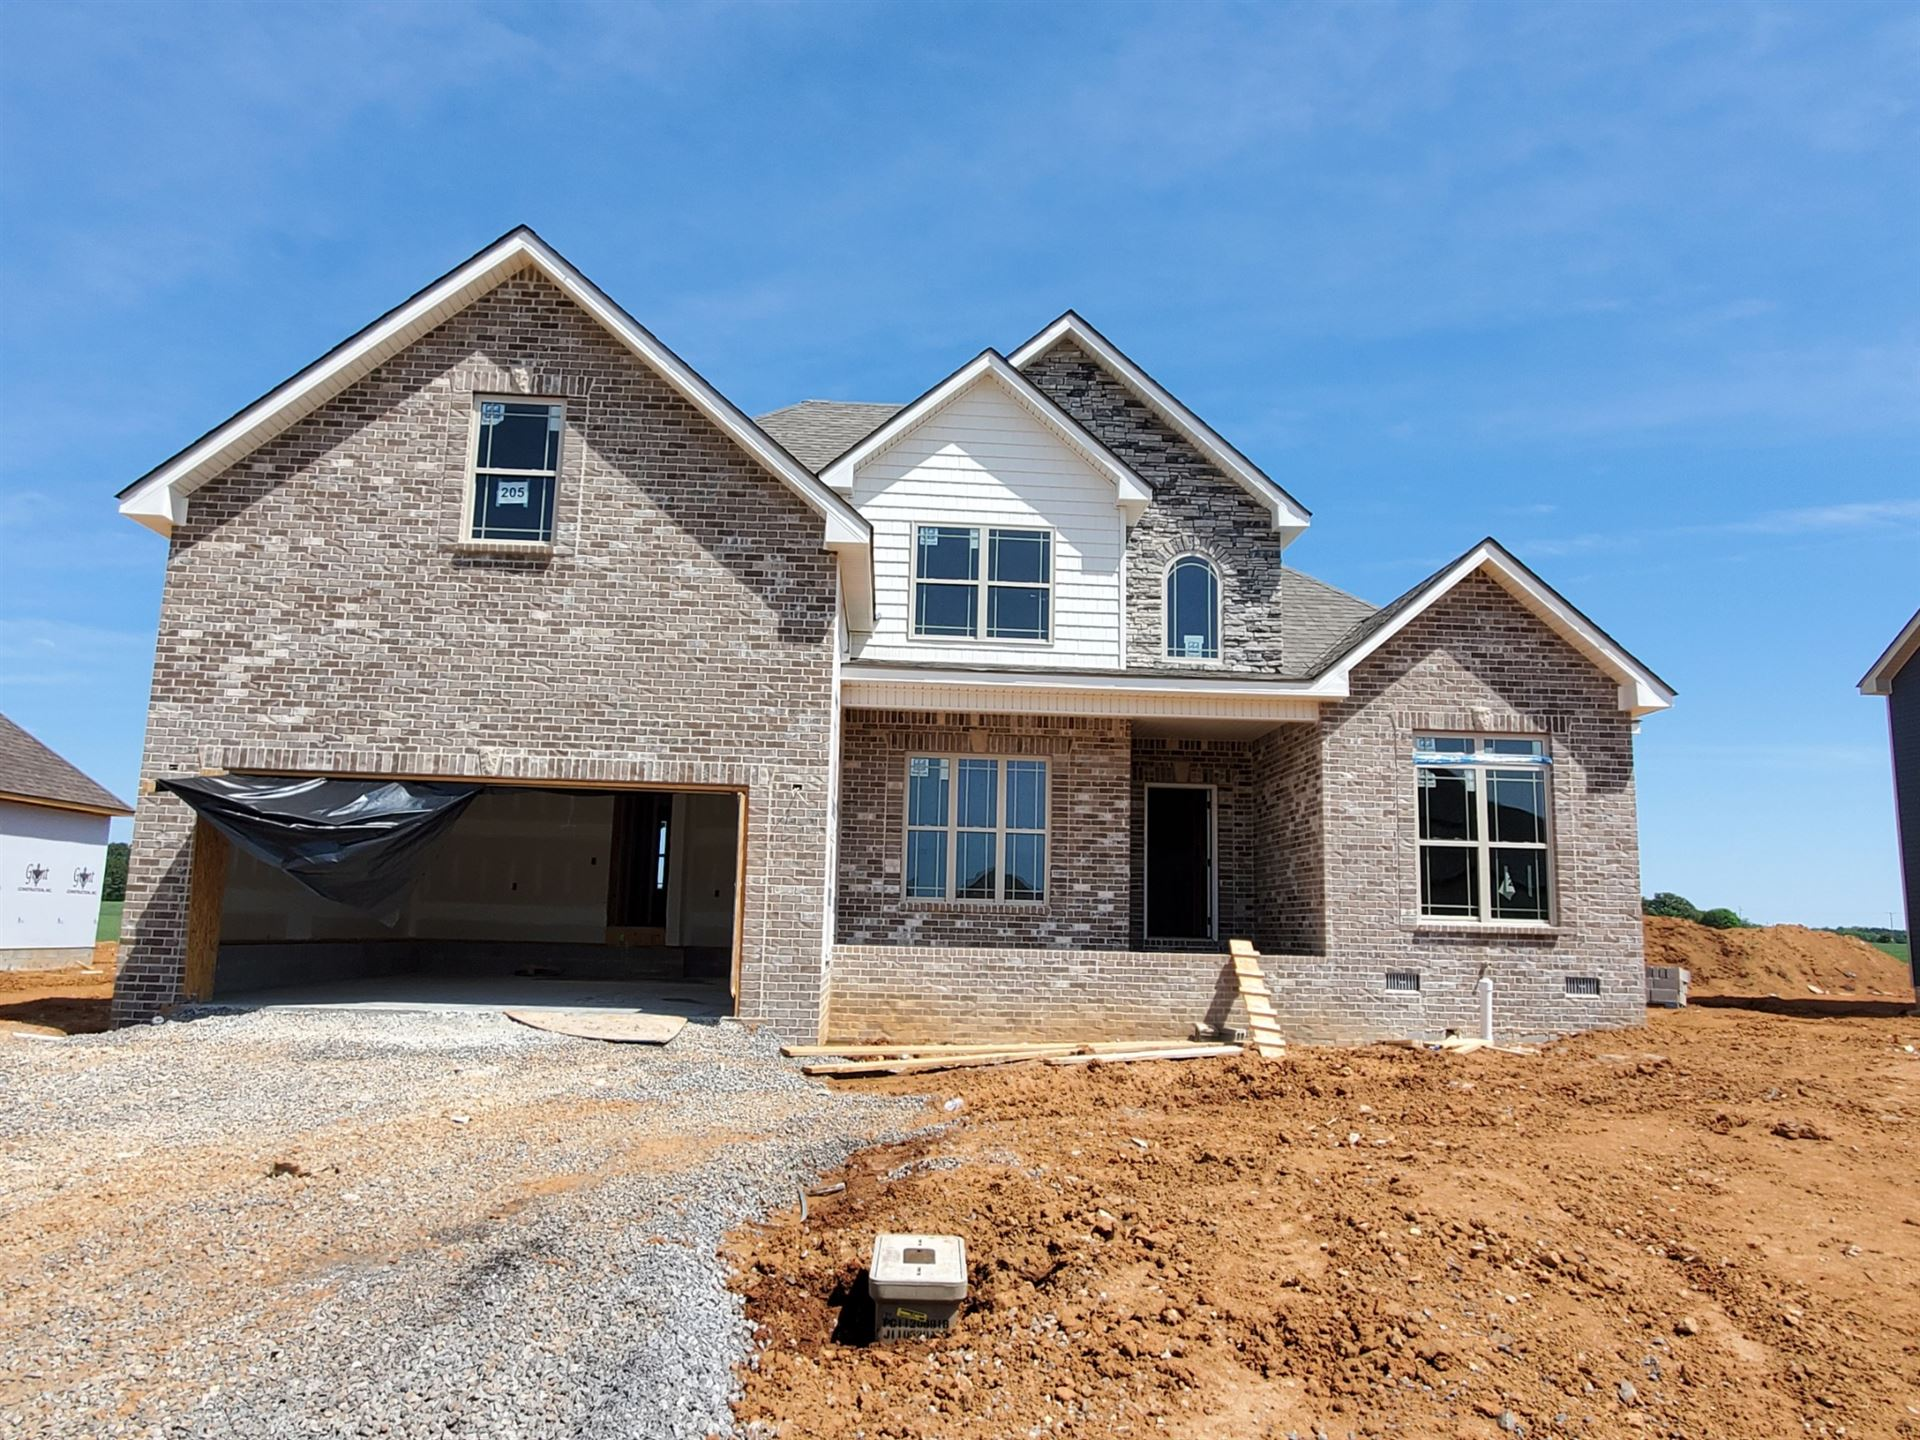 205 Wellington Fields, Clarksville, TN 37043 - MLS#: 2216248